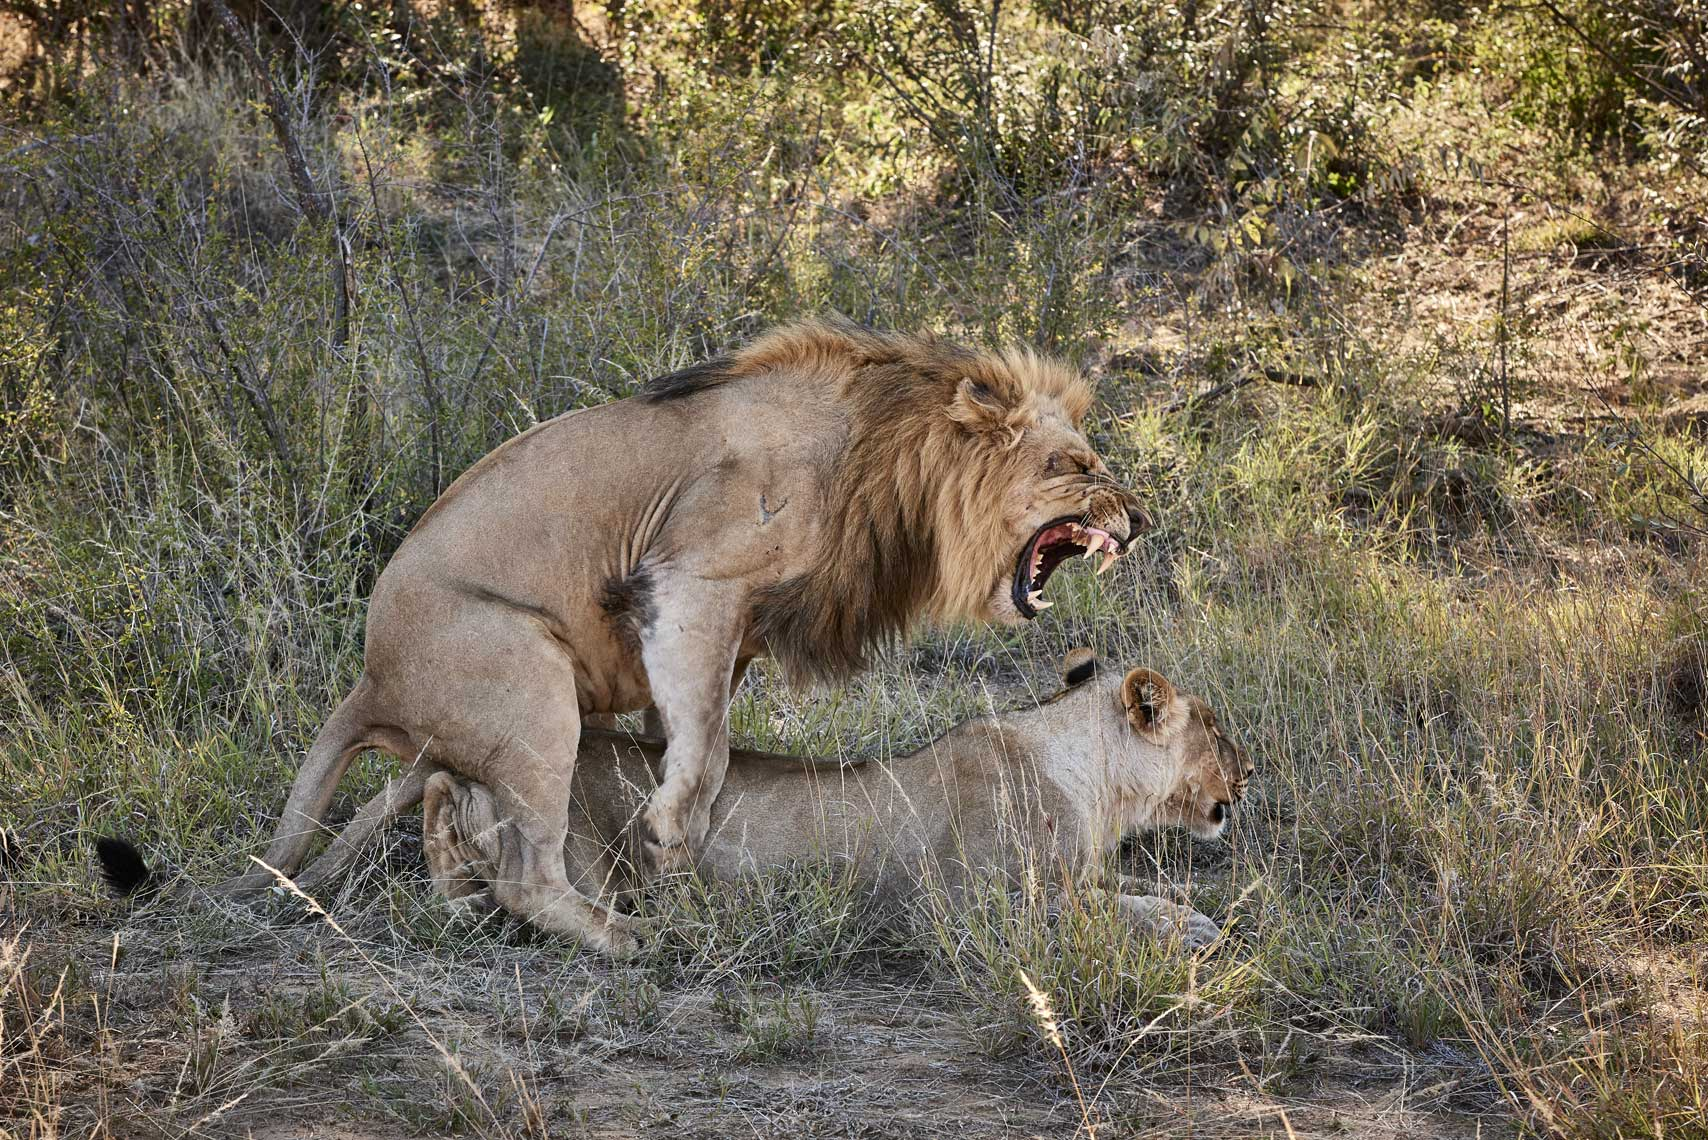 Two-lions-mating-in-Safari-male-roaring